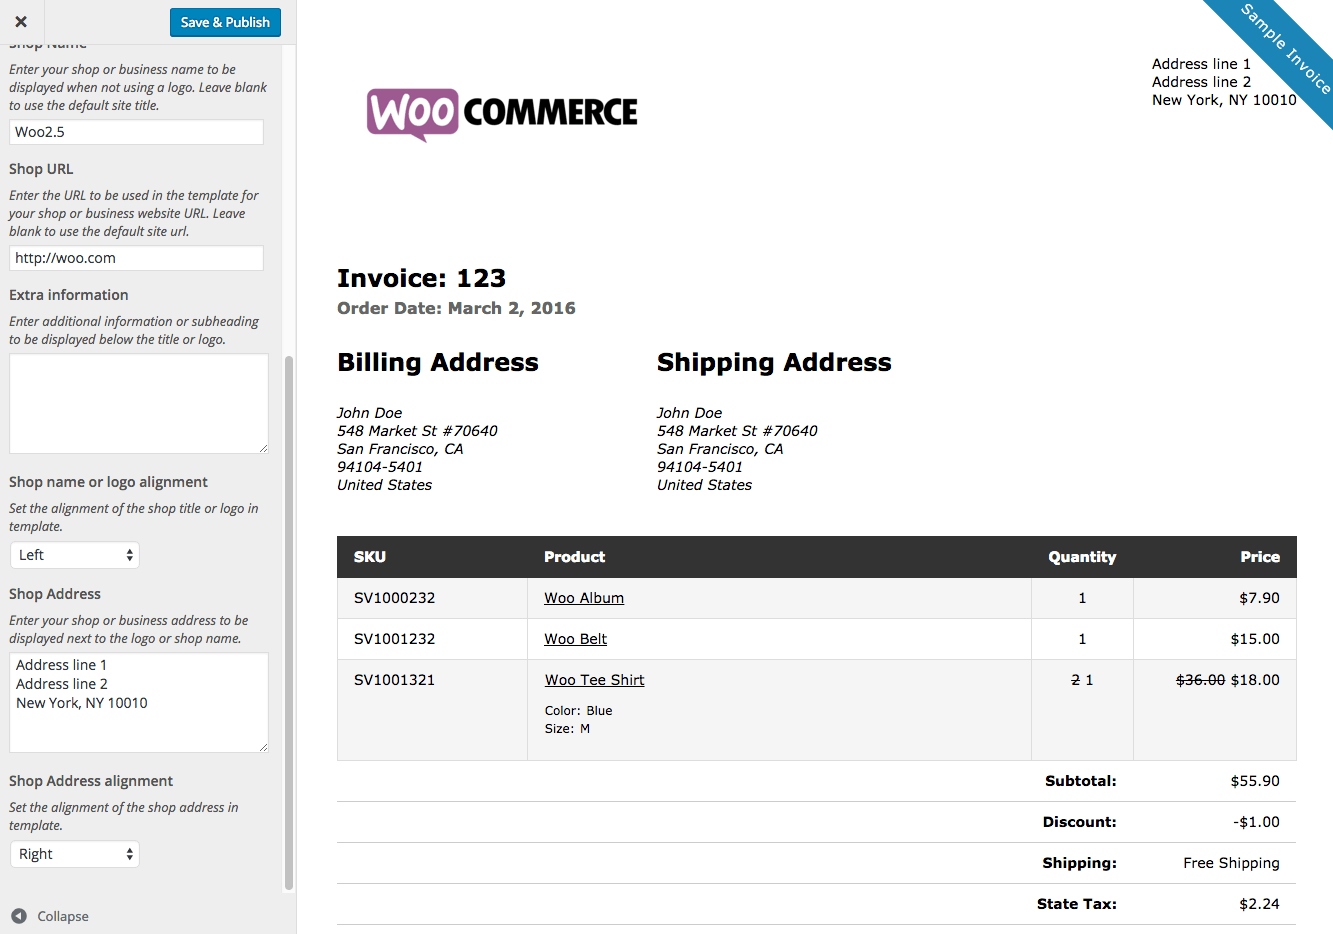 Shopdesignsus  Mesmerizing Woocommerce Print Invoices Amp Packing Lists  Woocommerce Docs With Engaging Woocommerce Print Invoices  Packing Lists Customizer With Beauteous Virtually There Einvoice Also Delivery Invoice In Addition How To Fill Out A Commercial Invoice And Invoice Management System As Well As Purchase Orders And Invoices Additionally Contract Invoice From Docswoocommercecom With Shopdesignsus  Engaging Woocommerce Print Invoices Amp Packing Lists  Woocommerce Docs With Beauteous Woocommerce Print Invoices  Packing Lists Customizer And Mesmerizing Virtually There Einvoice Also Delivery Invoice In Addition How To Fill Out A Commercial Invoice From Docswoocommercecom